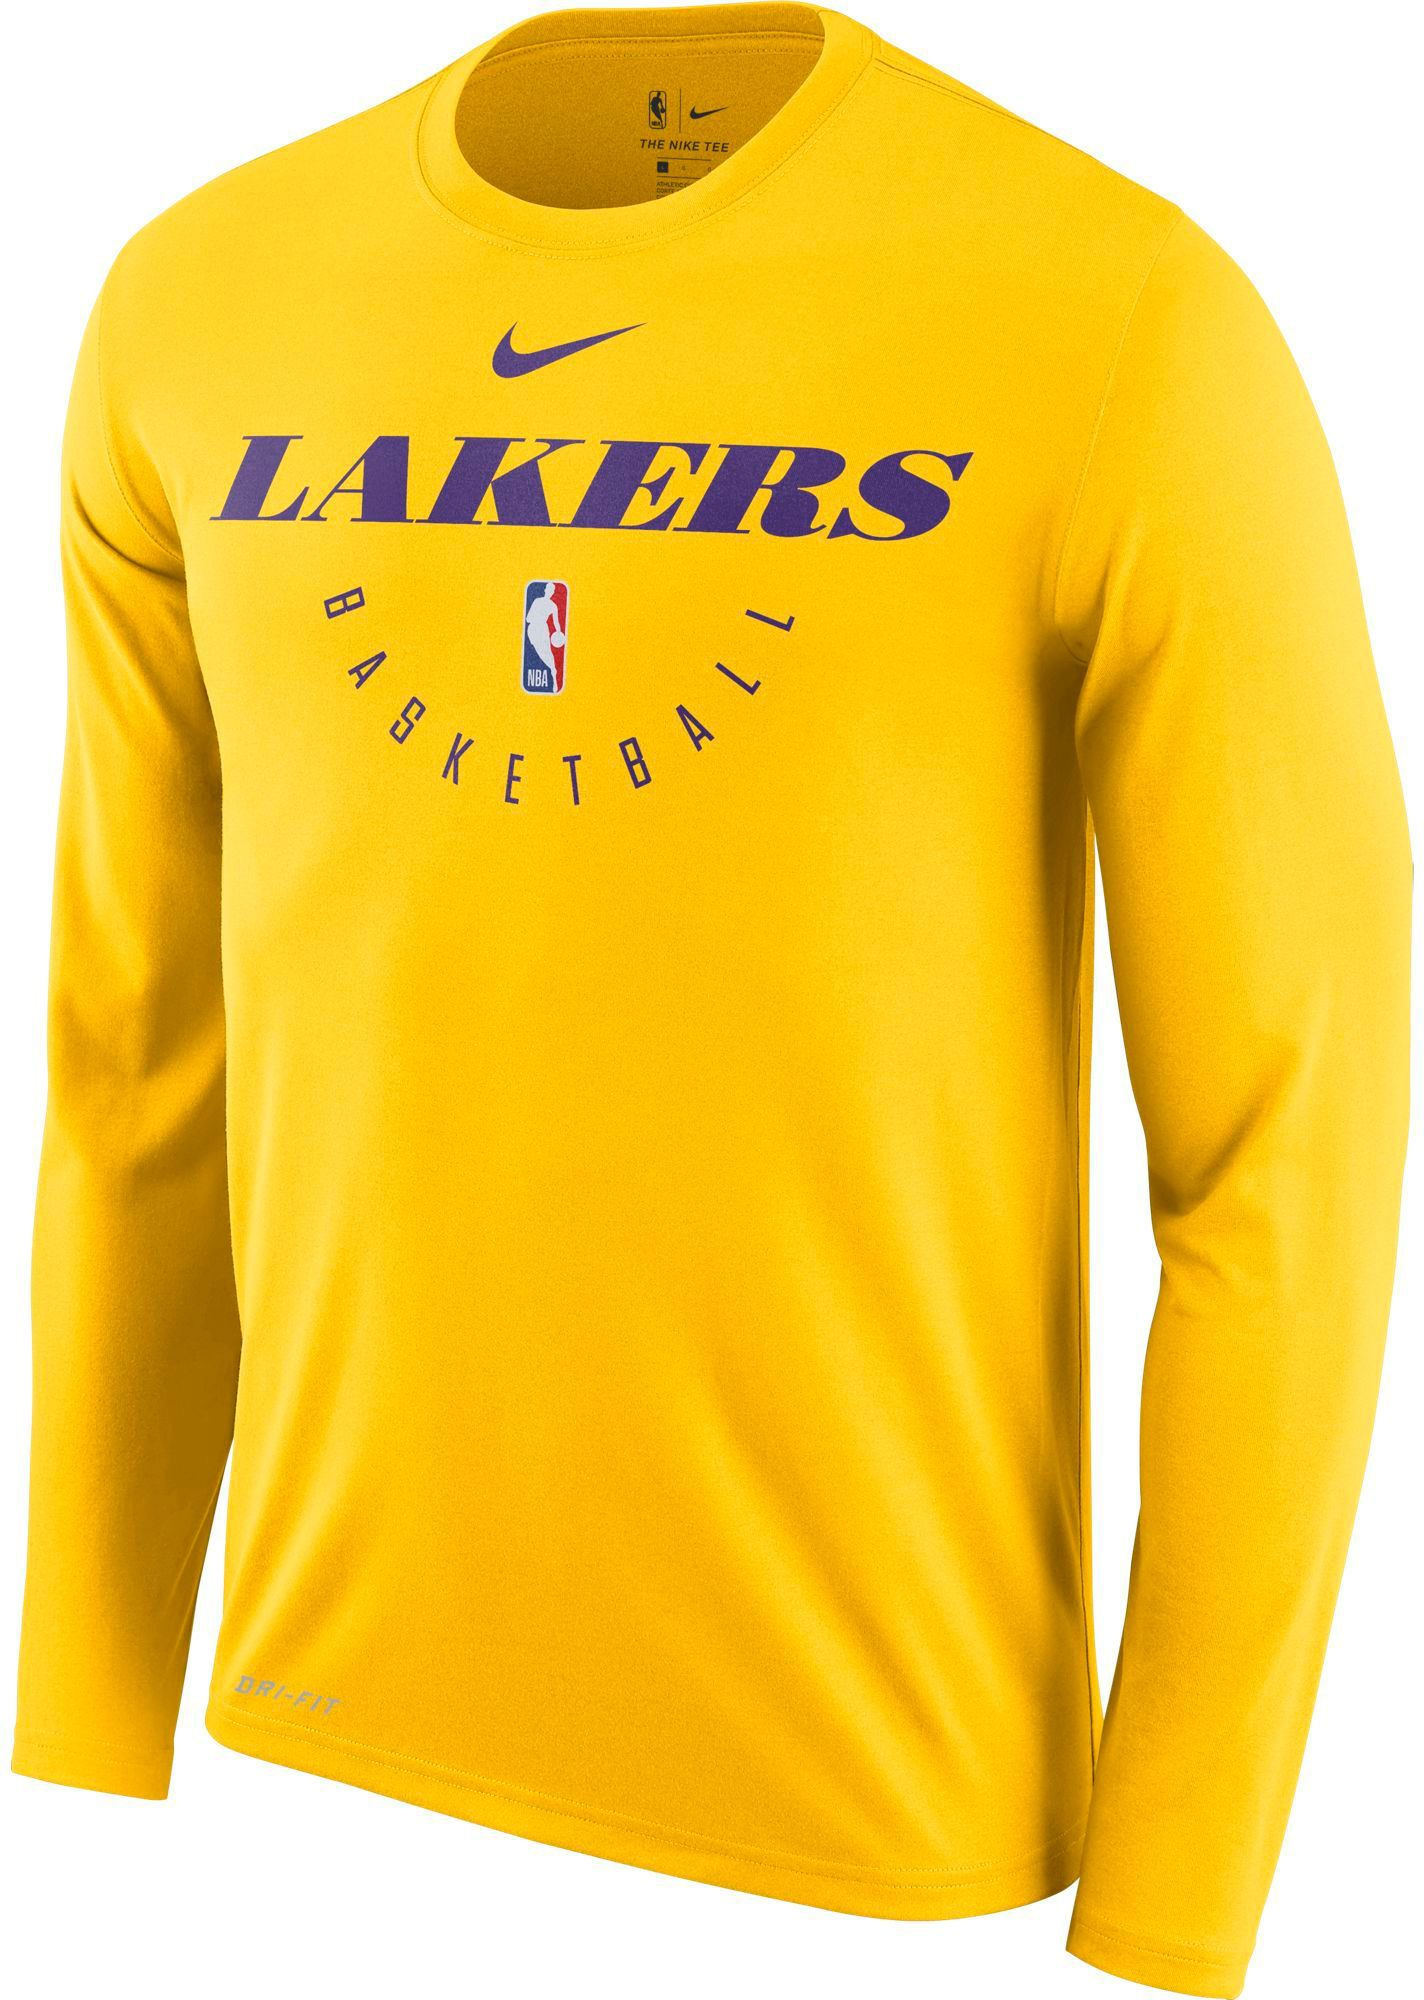 73629d937 Nike Men's Los Angeles Lakers Dri-FIT Practice Long Sleeve Shirt, Size:  Small, Team